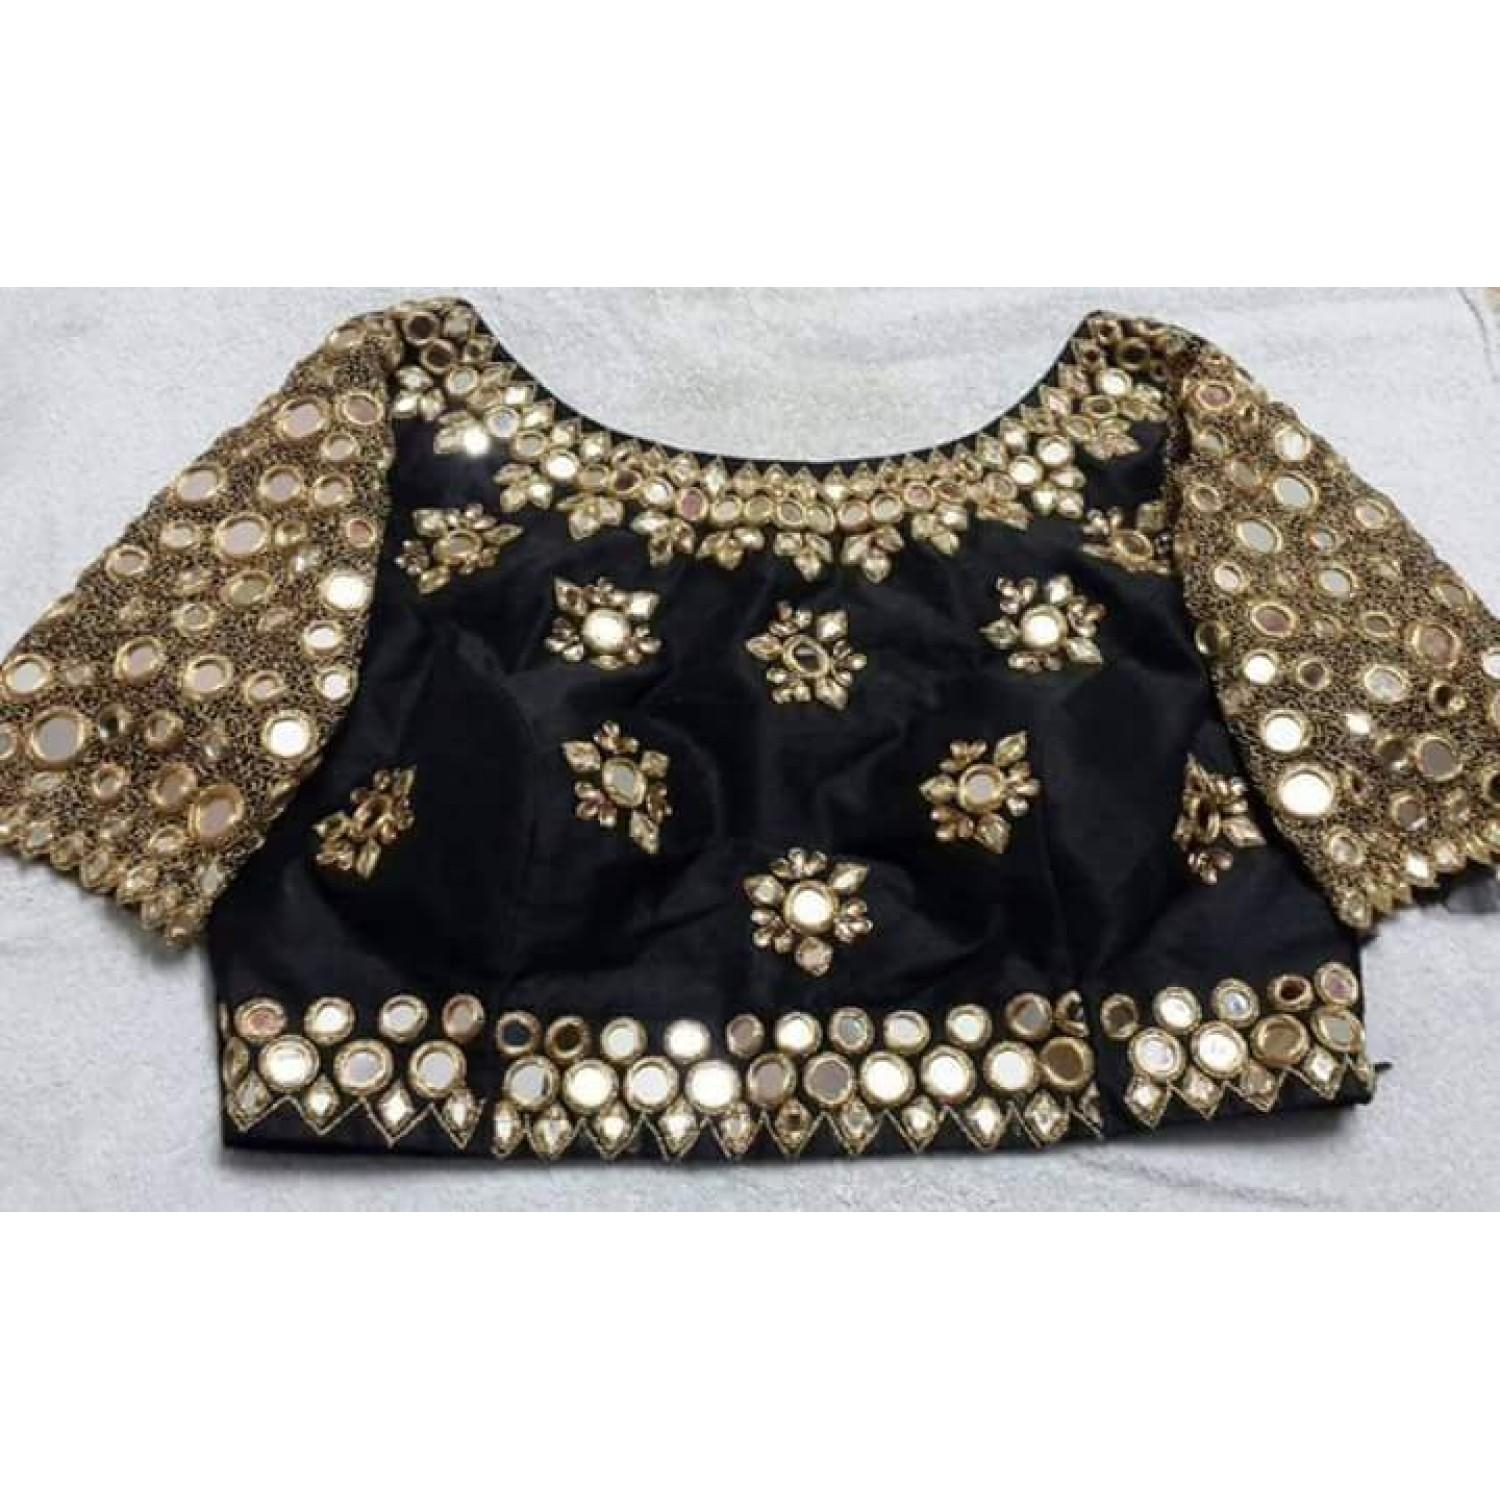 Latest Bridal Readymade Blouses Online Shopping India With Low Pertaining To Online Shopping Mirror (View 20 of 20)